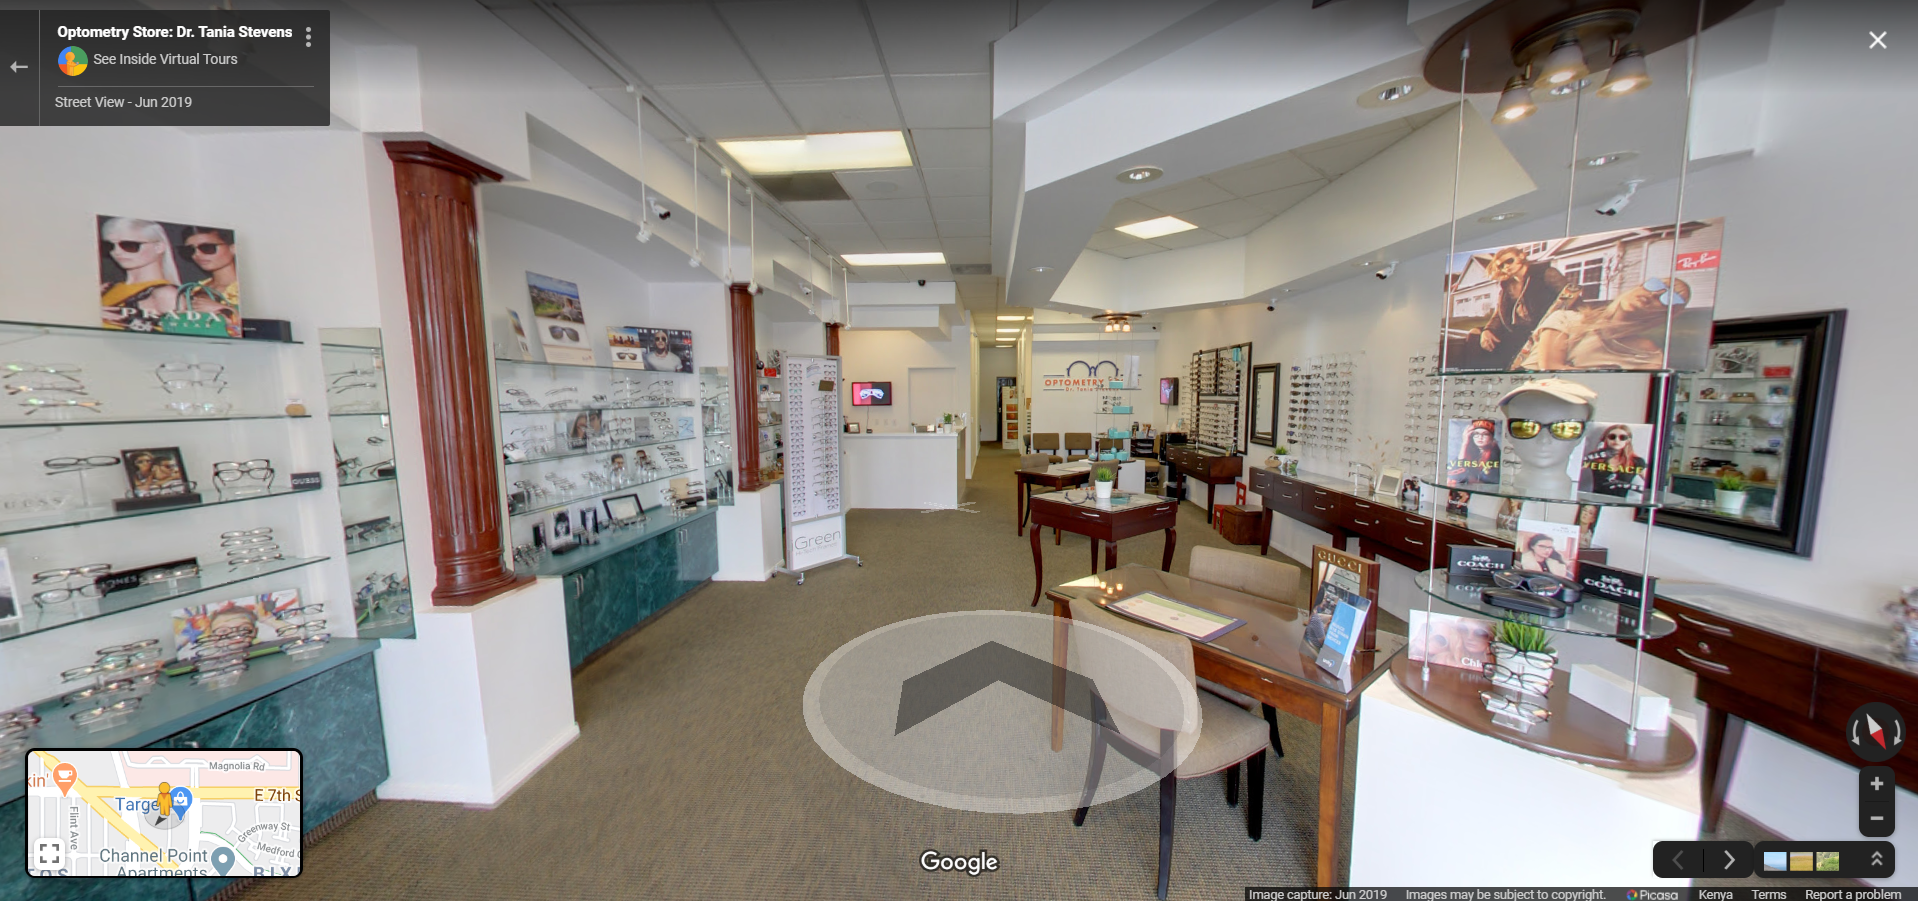 Optometry Store - Long Beach